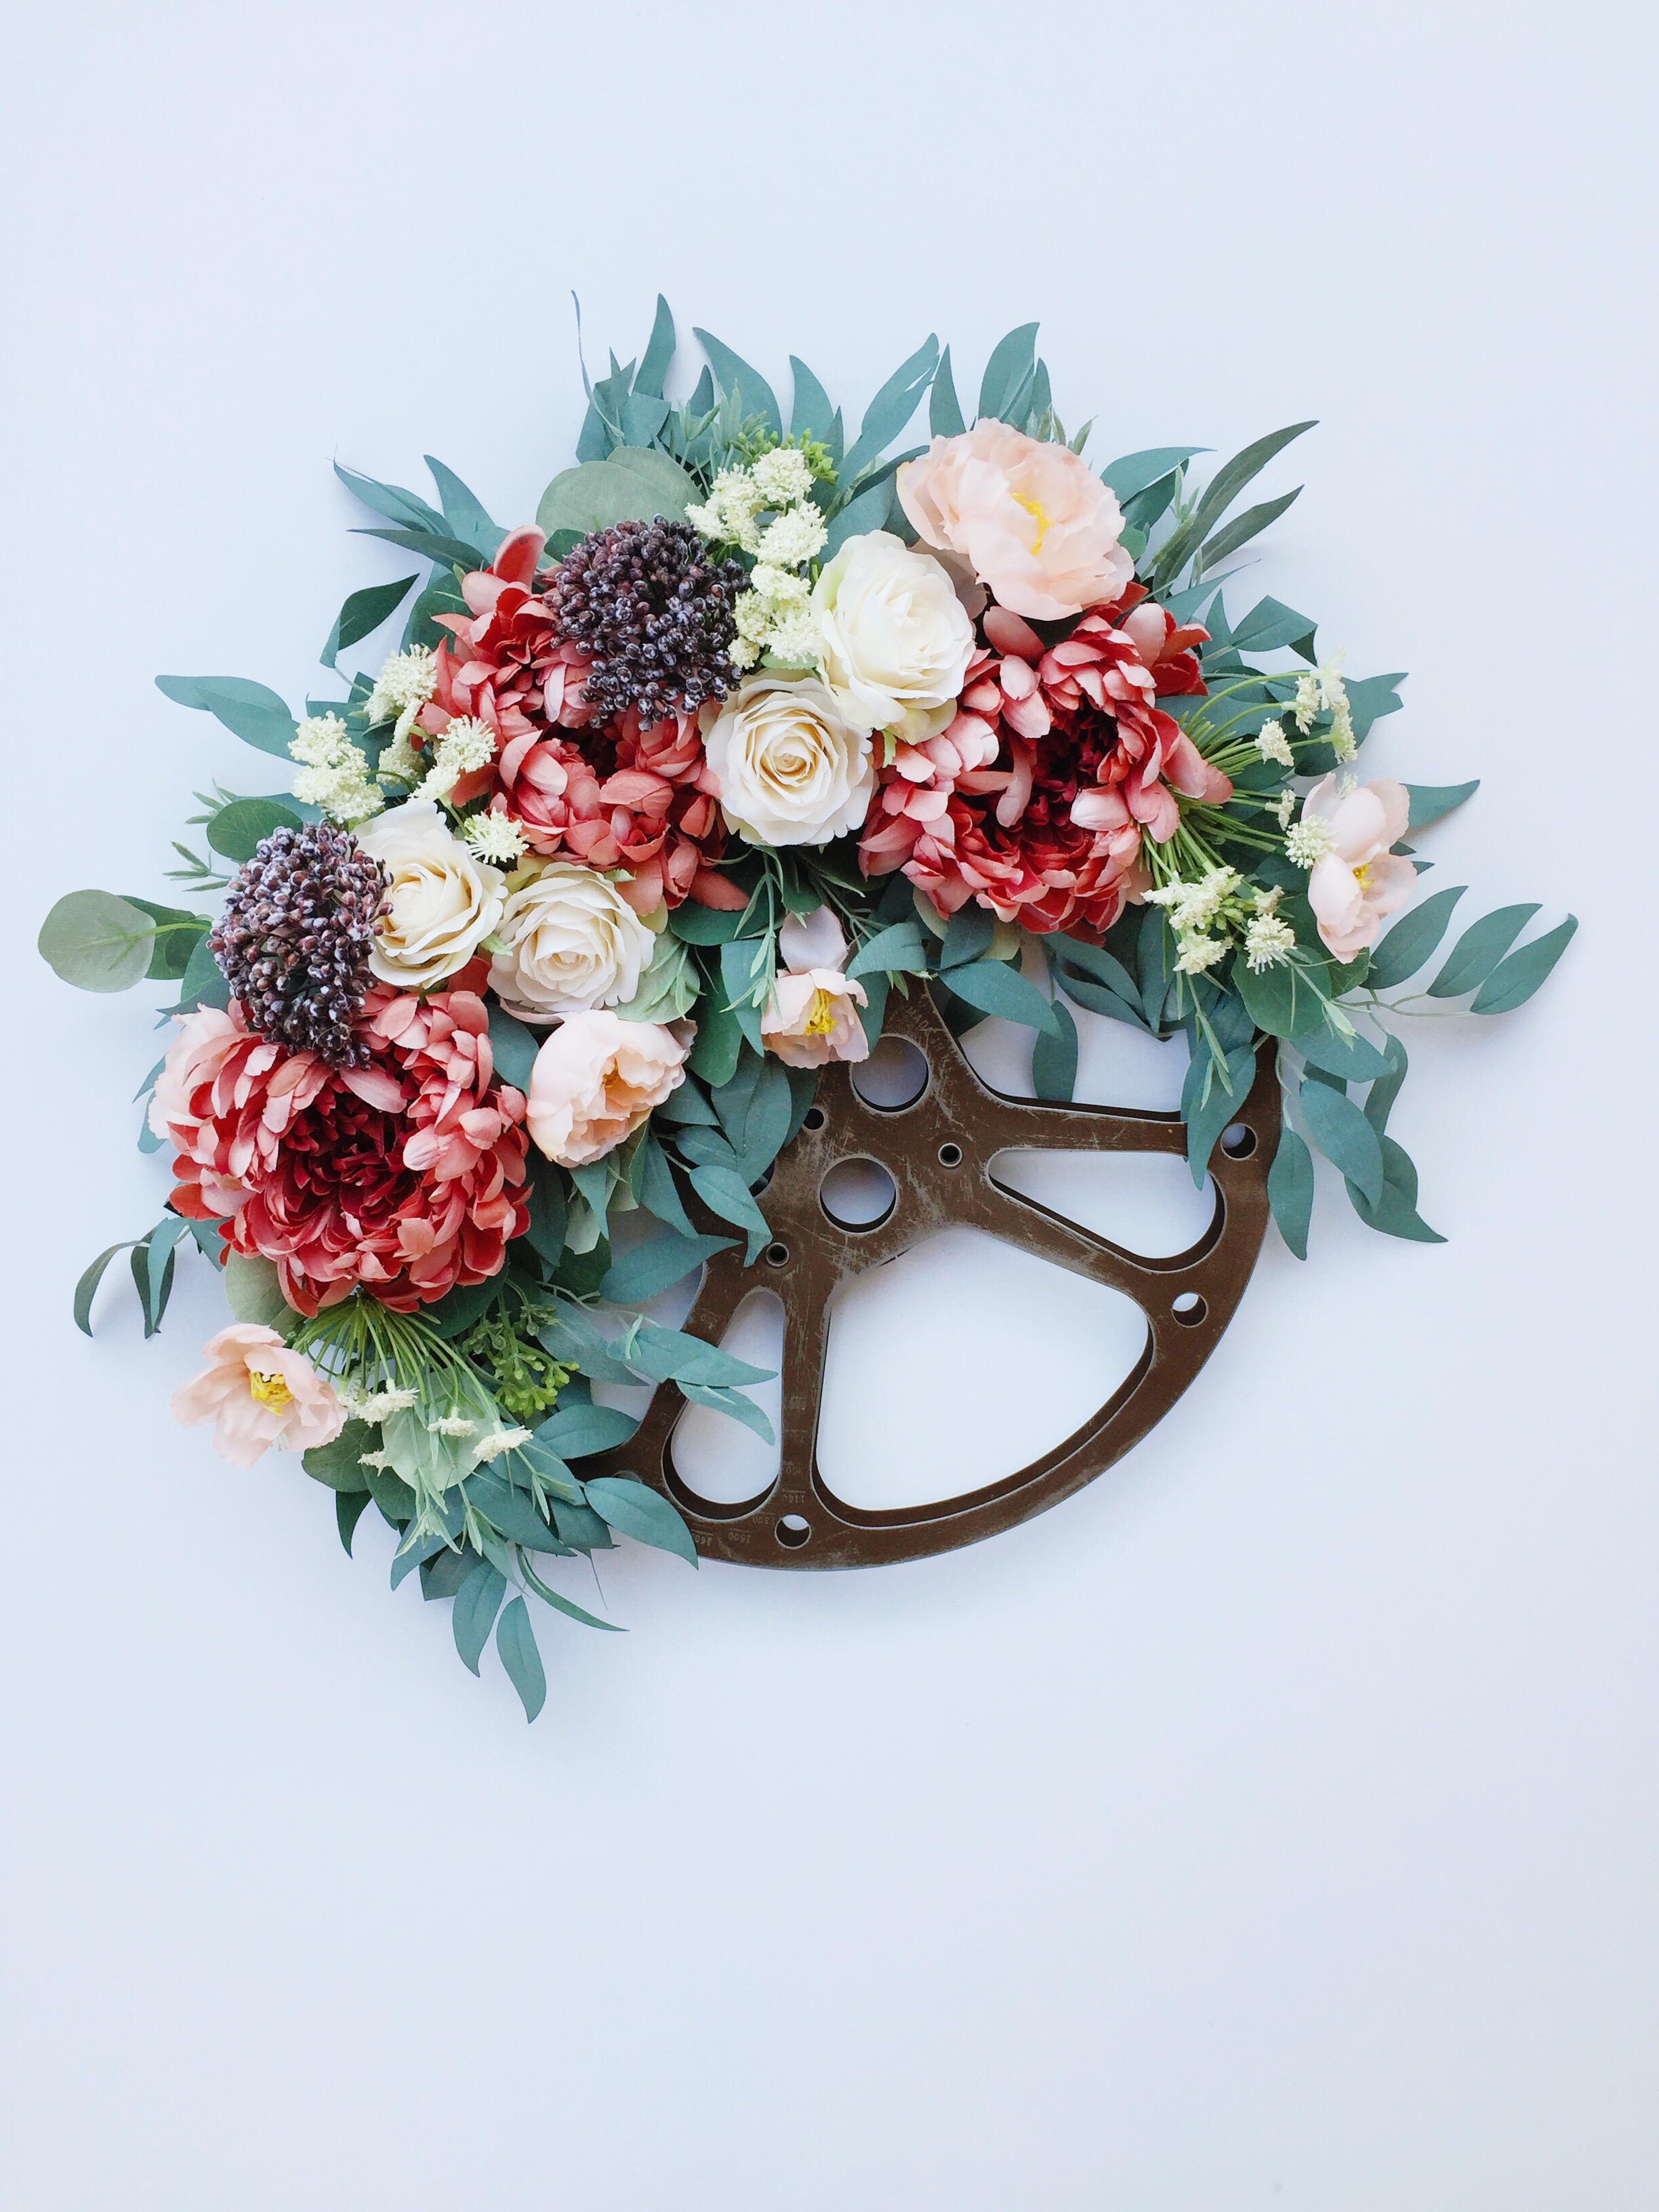 Round floral decorative wreath with greenery from Bloom Valley Market.